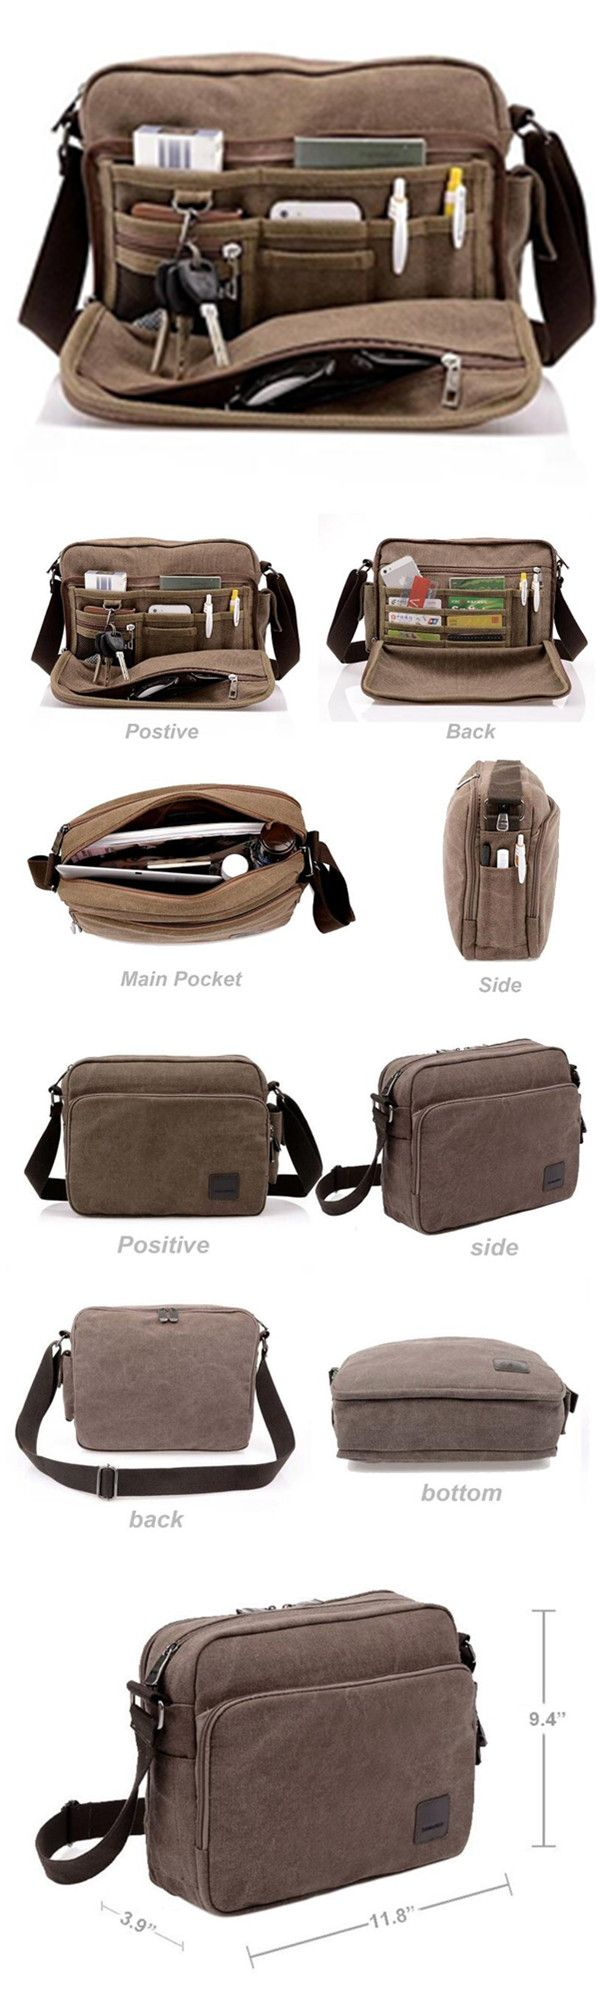 Multifunction Men Canvas Bag Casual Travel Bolsa Masculina Men's Crossbody Bag Men Messenger #Bags bagail.com Travel bags